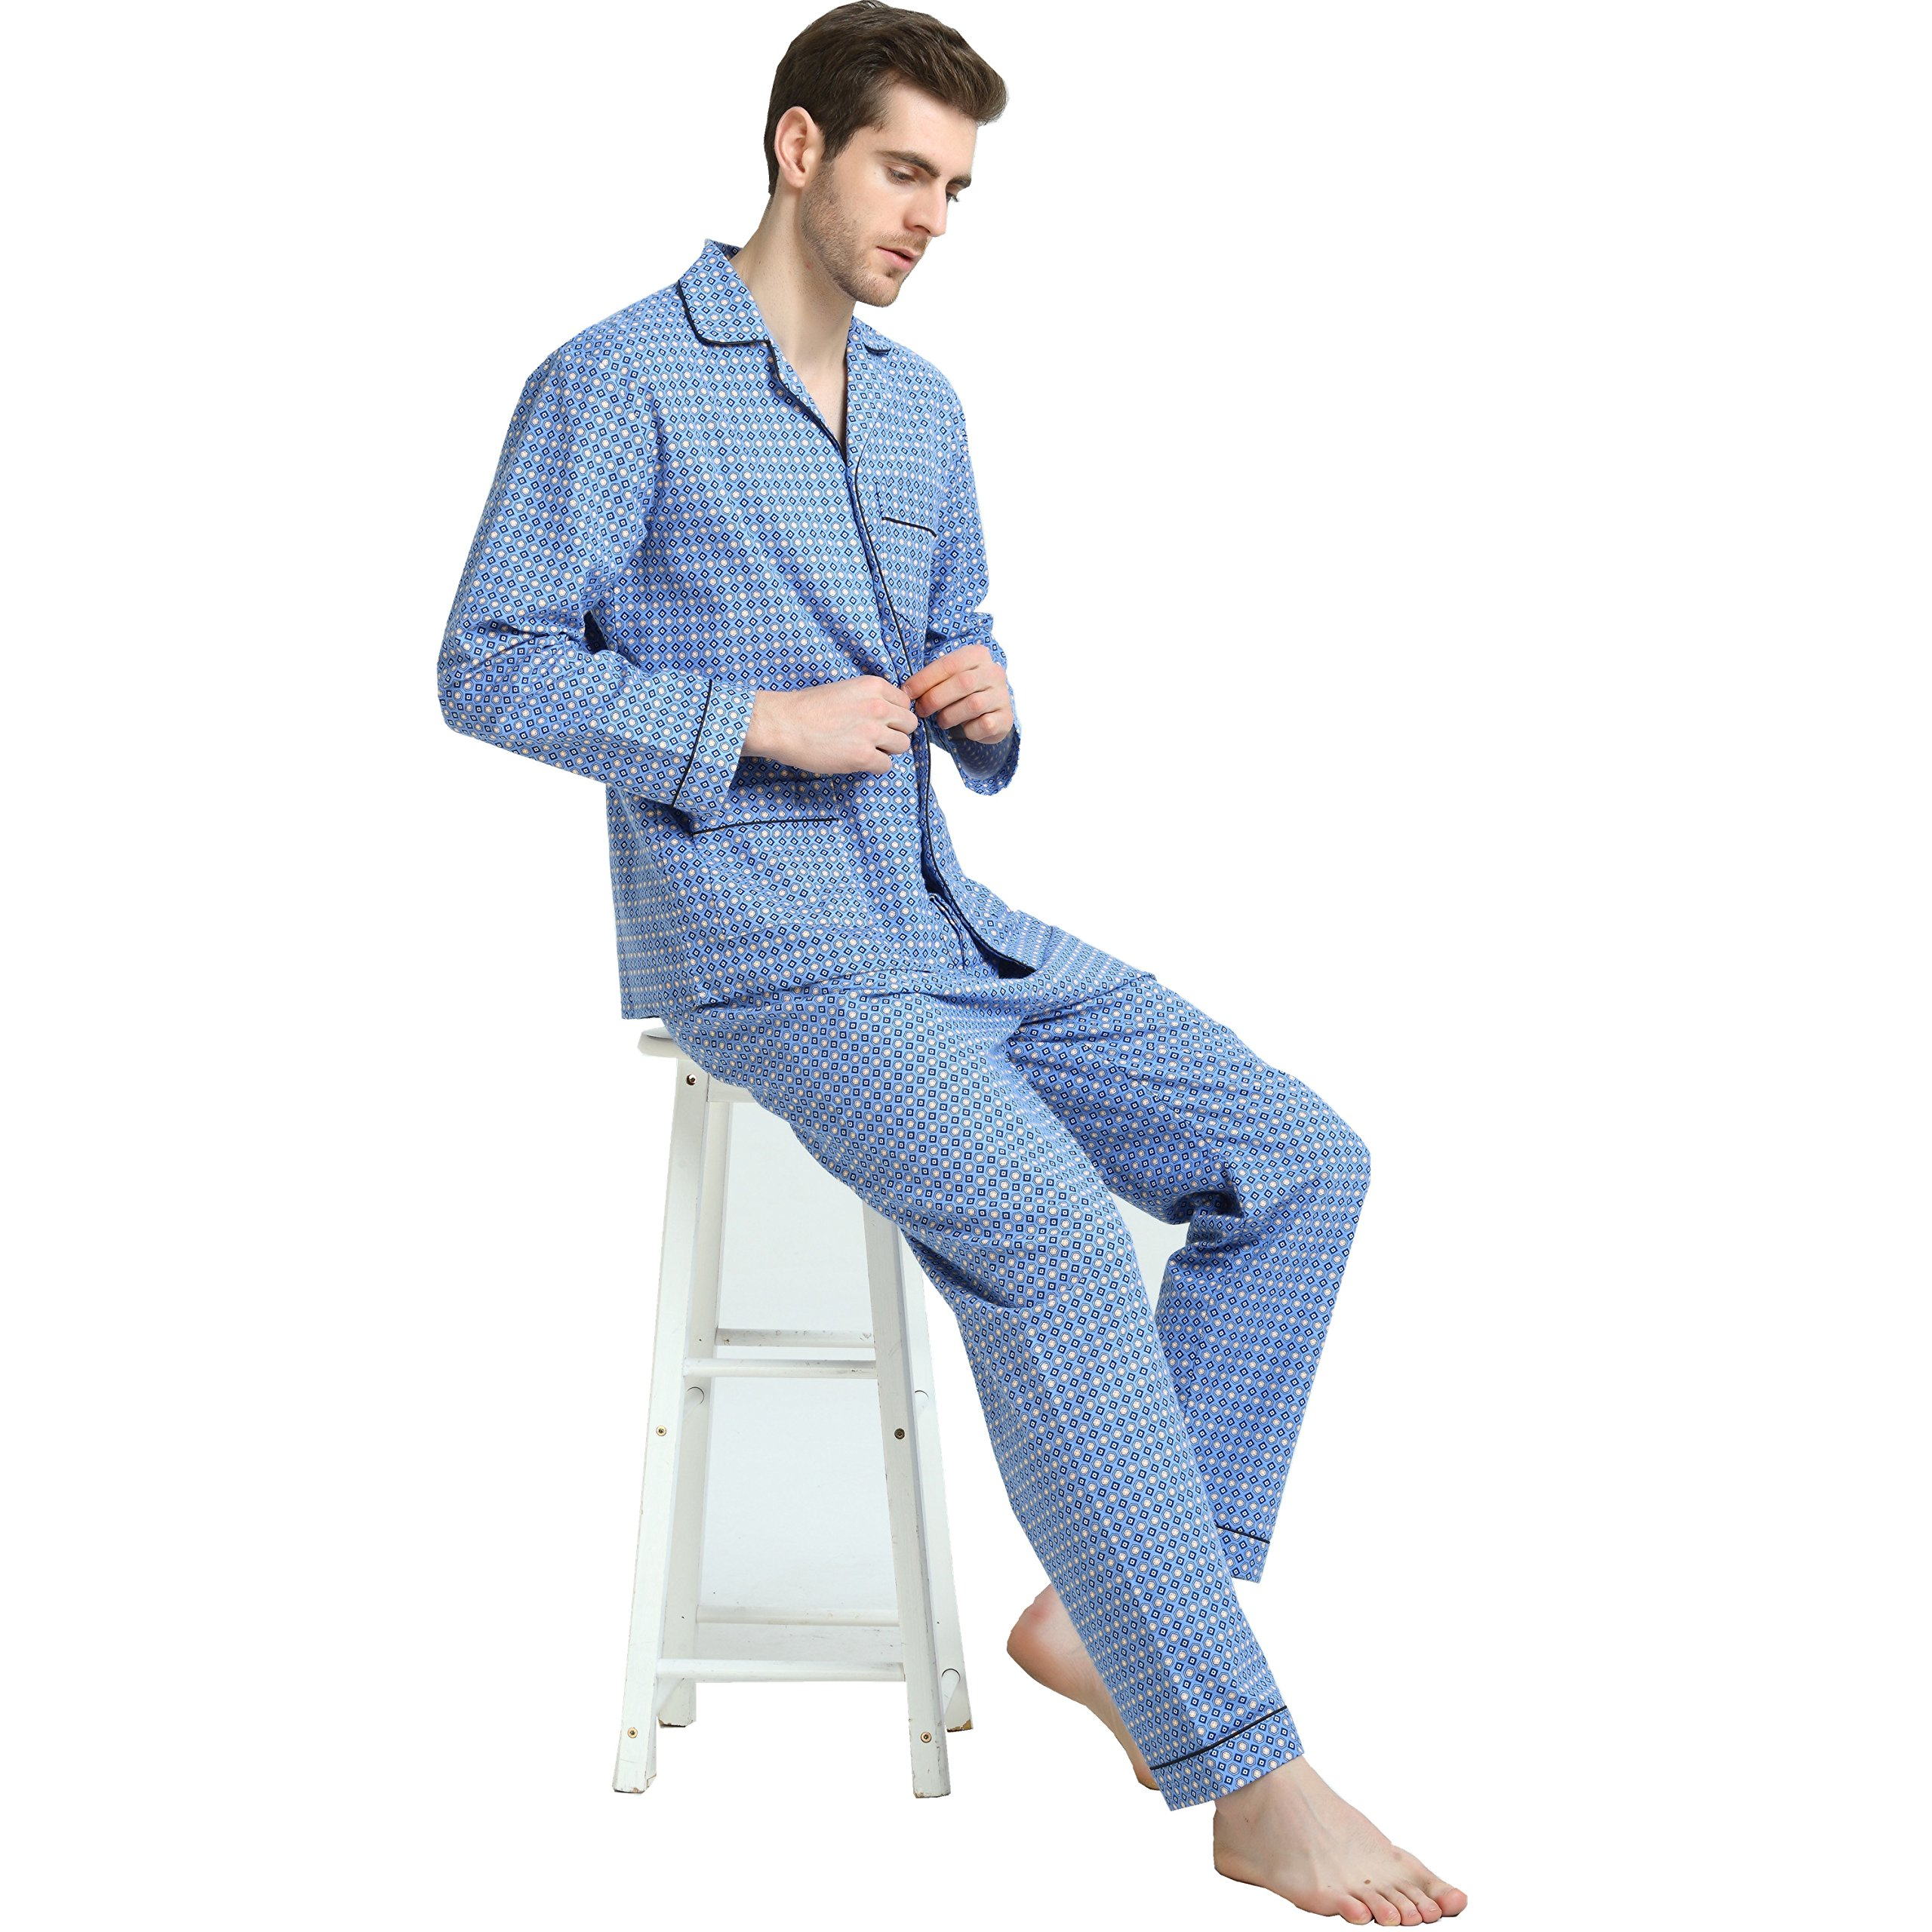 Cotton Sleepwear/Loungewear Sets for Men,100% Fleece Warm Pj Top and Bottom by GLOBAL (Image #7)